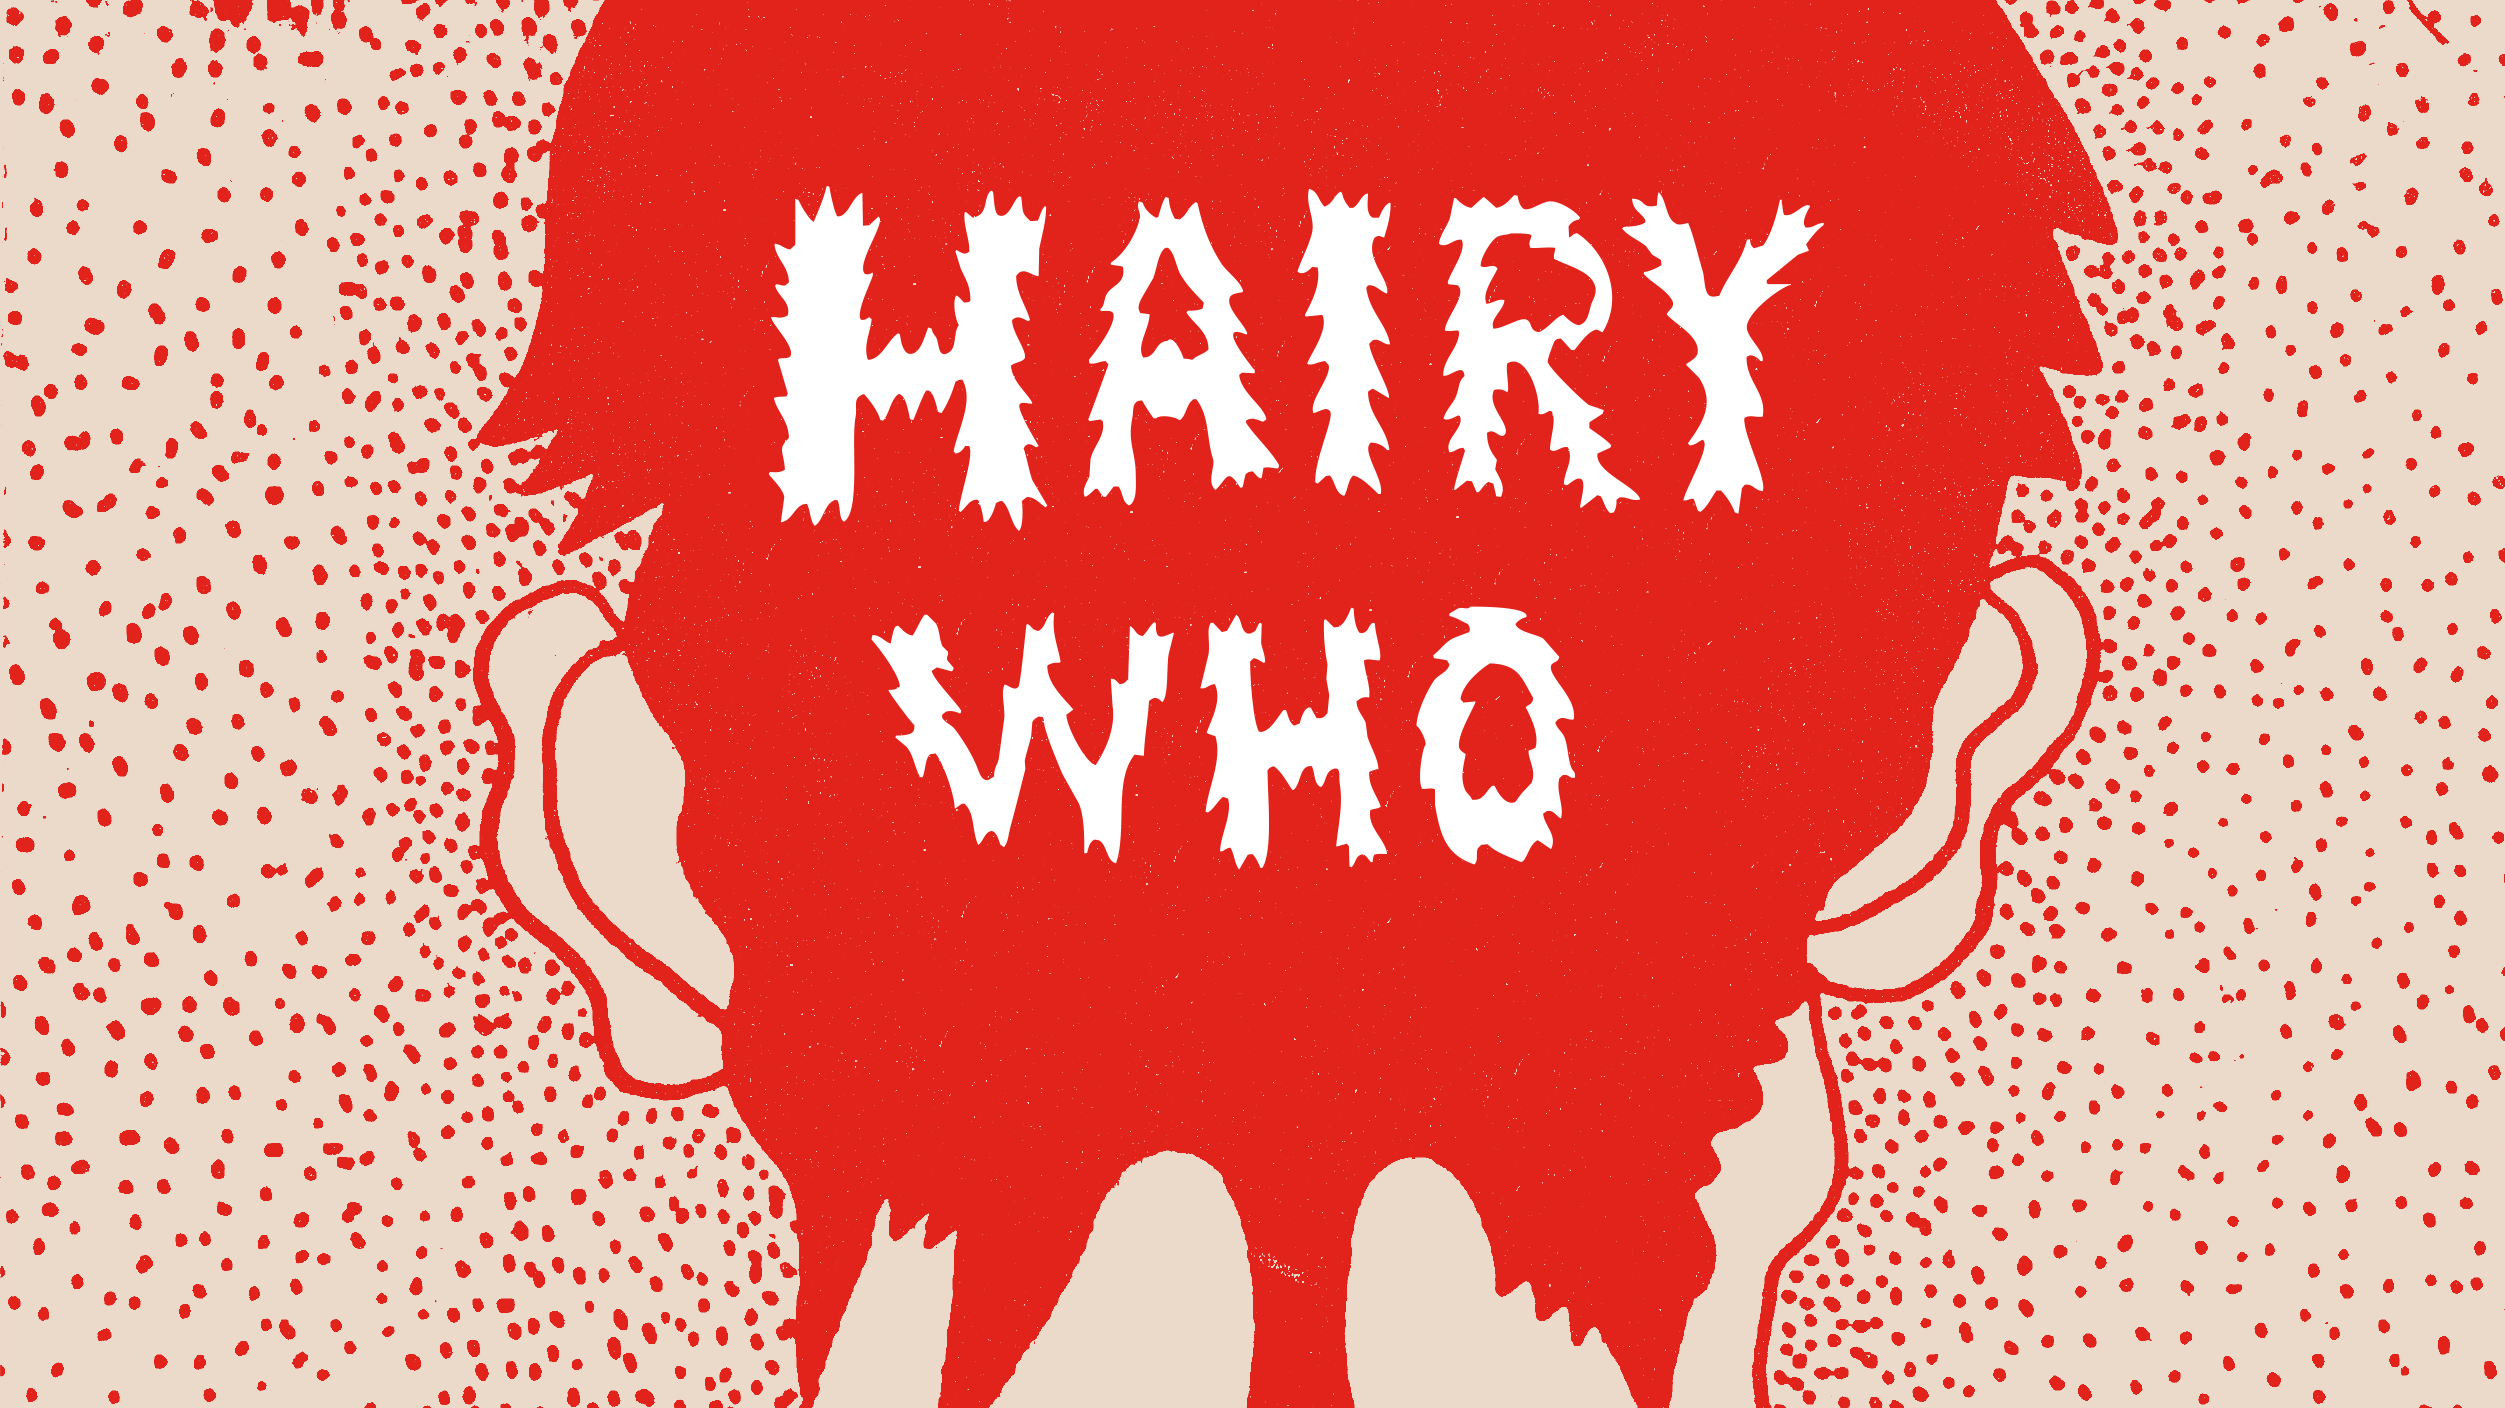 Hairywho Fcover